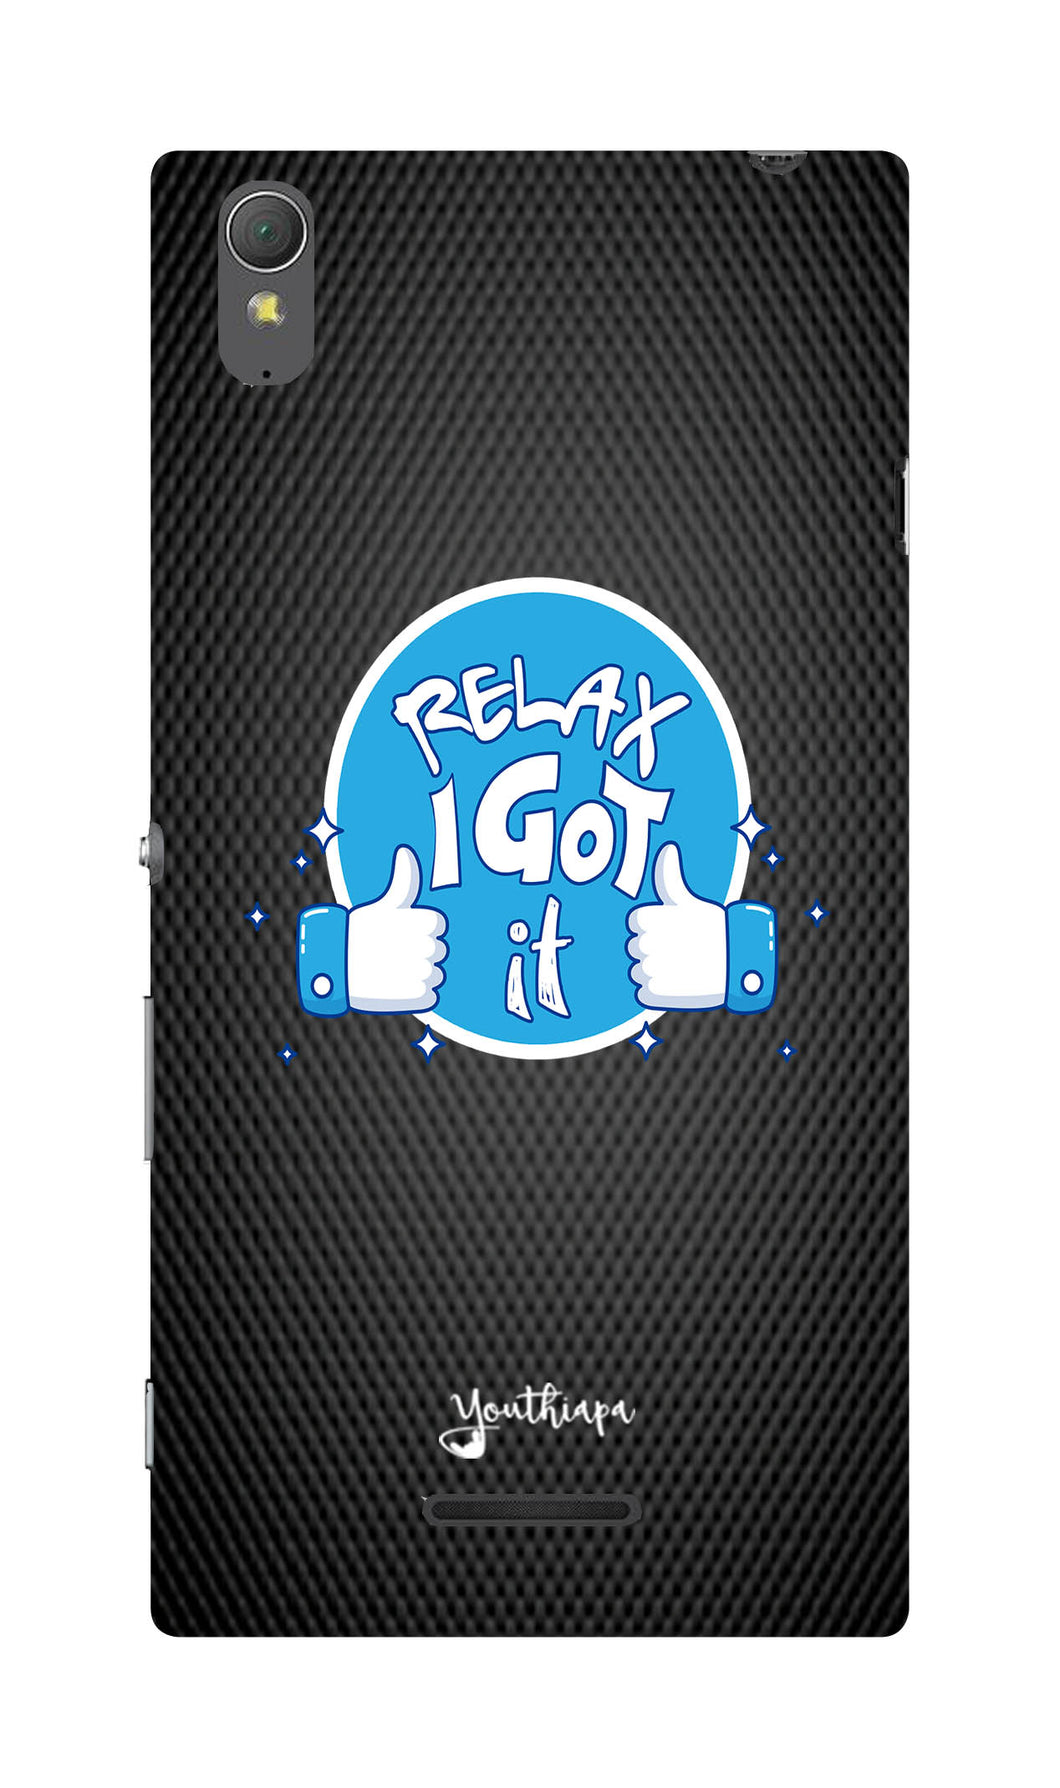 Relax Edition for Sony Xperia T3